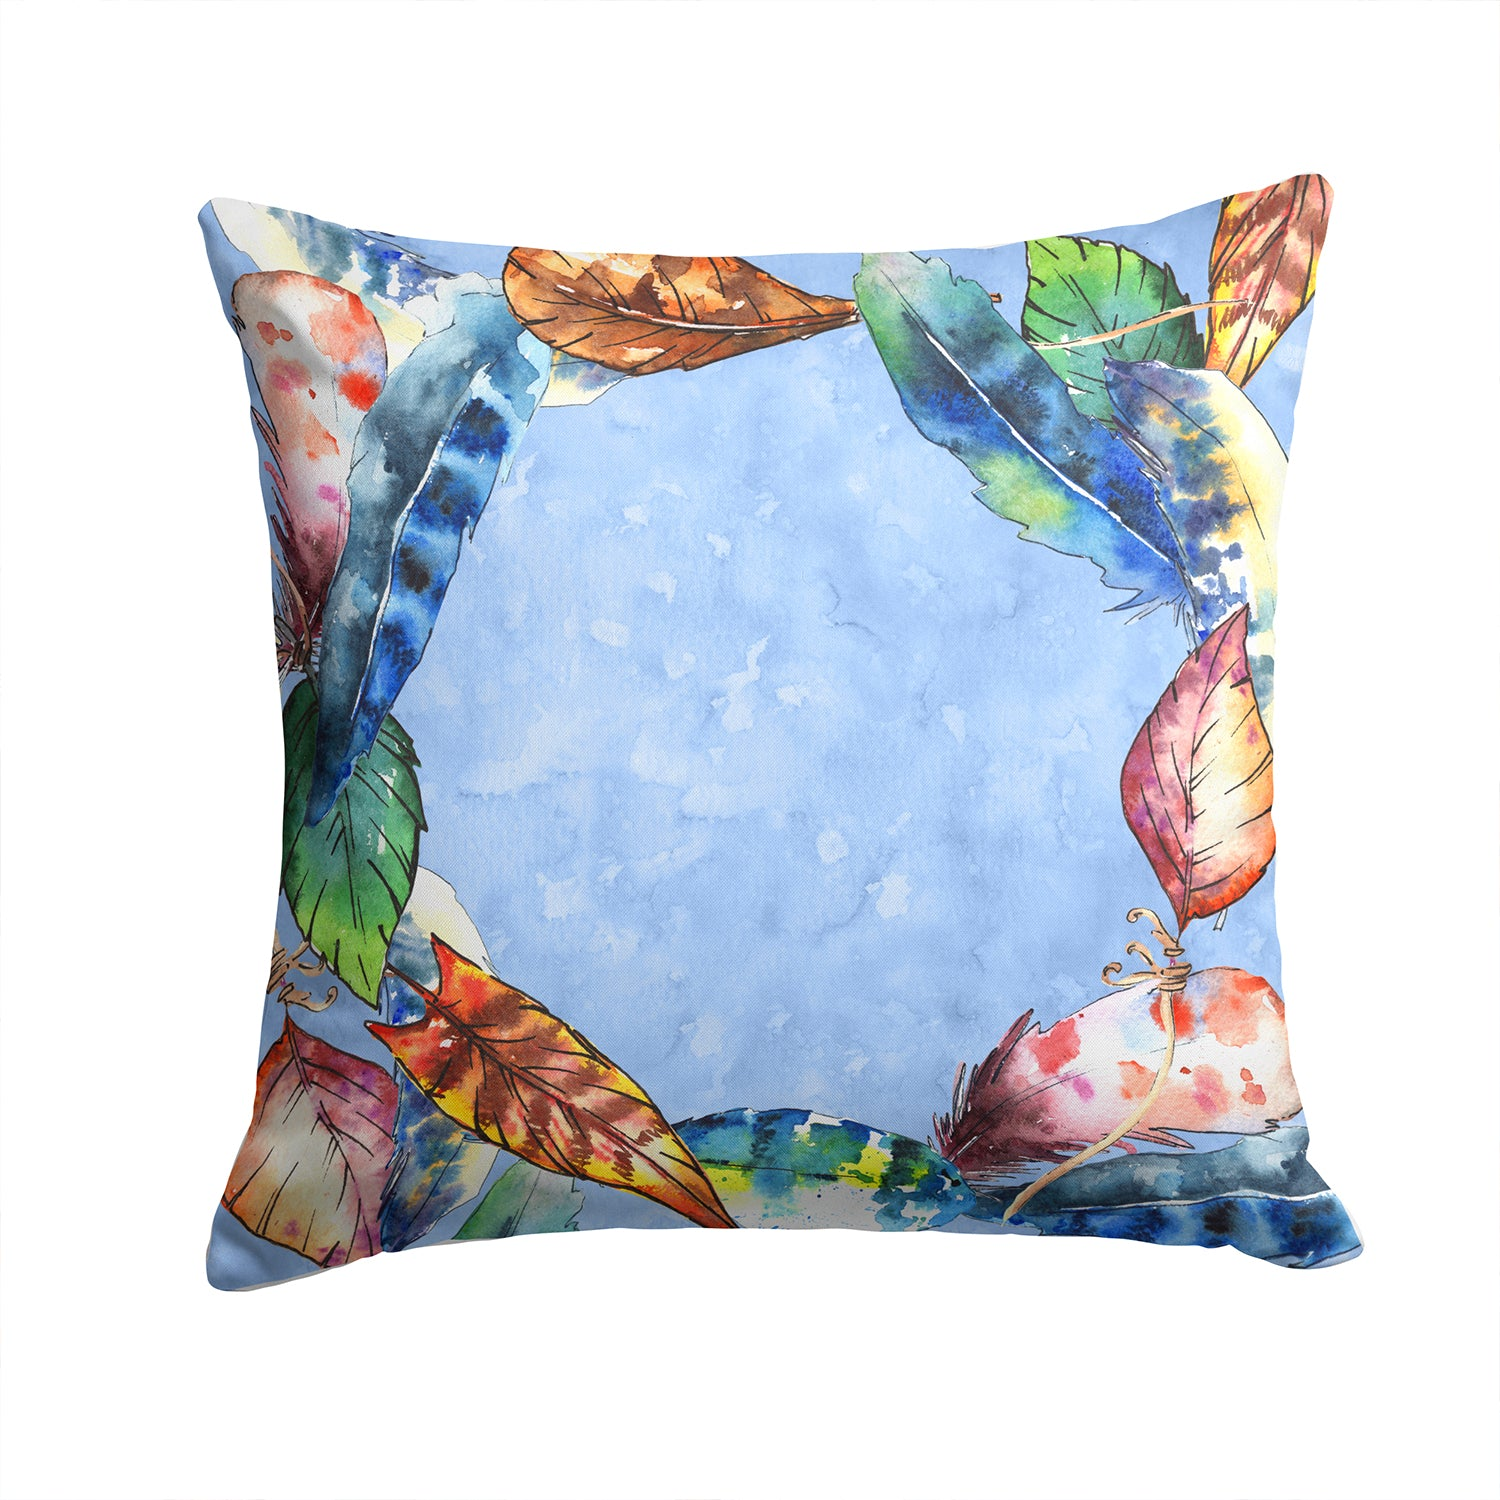 Buy this Feathers Fabric Decorative Pillow CK1704PW1414